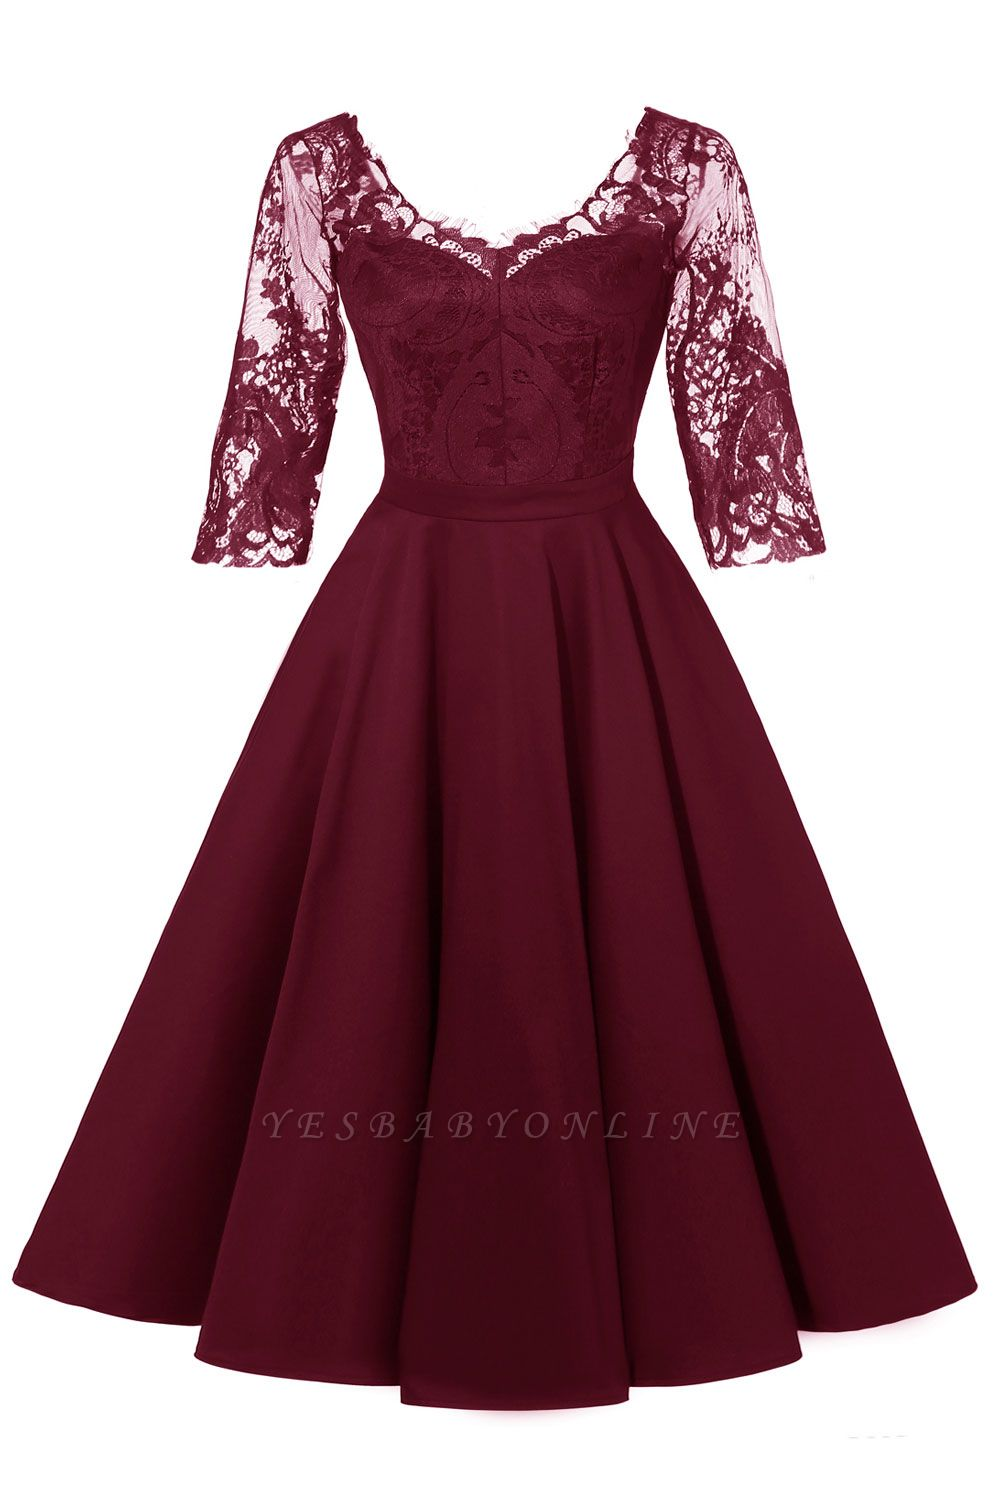 Stunning A-line Retro Scoop Neck V-back Ruffles Burgundy Lace Party Dresses